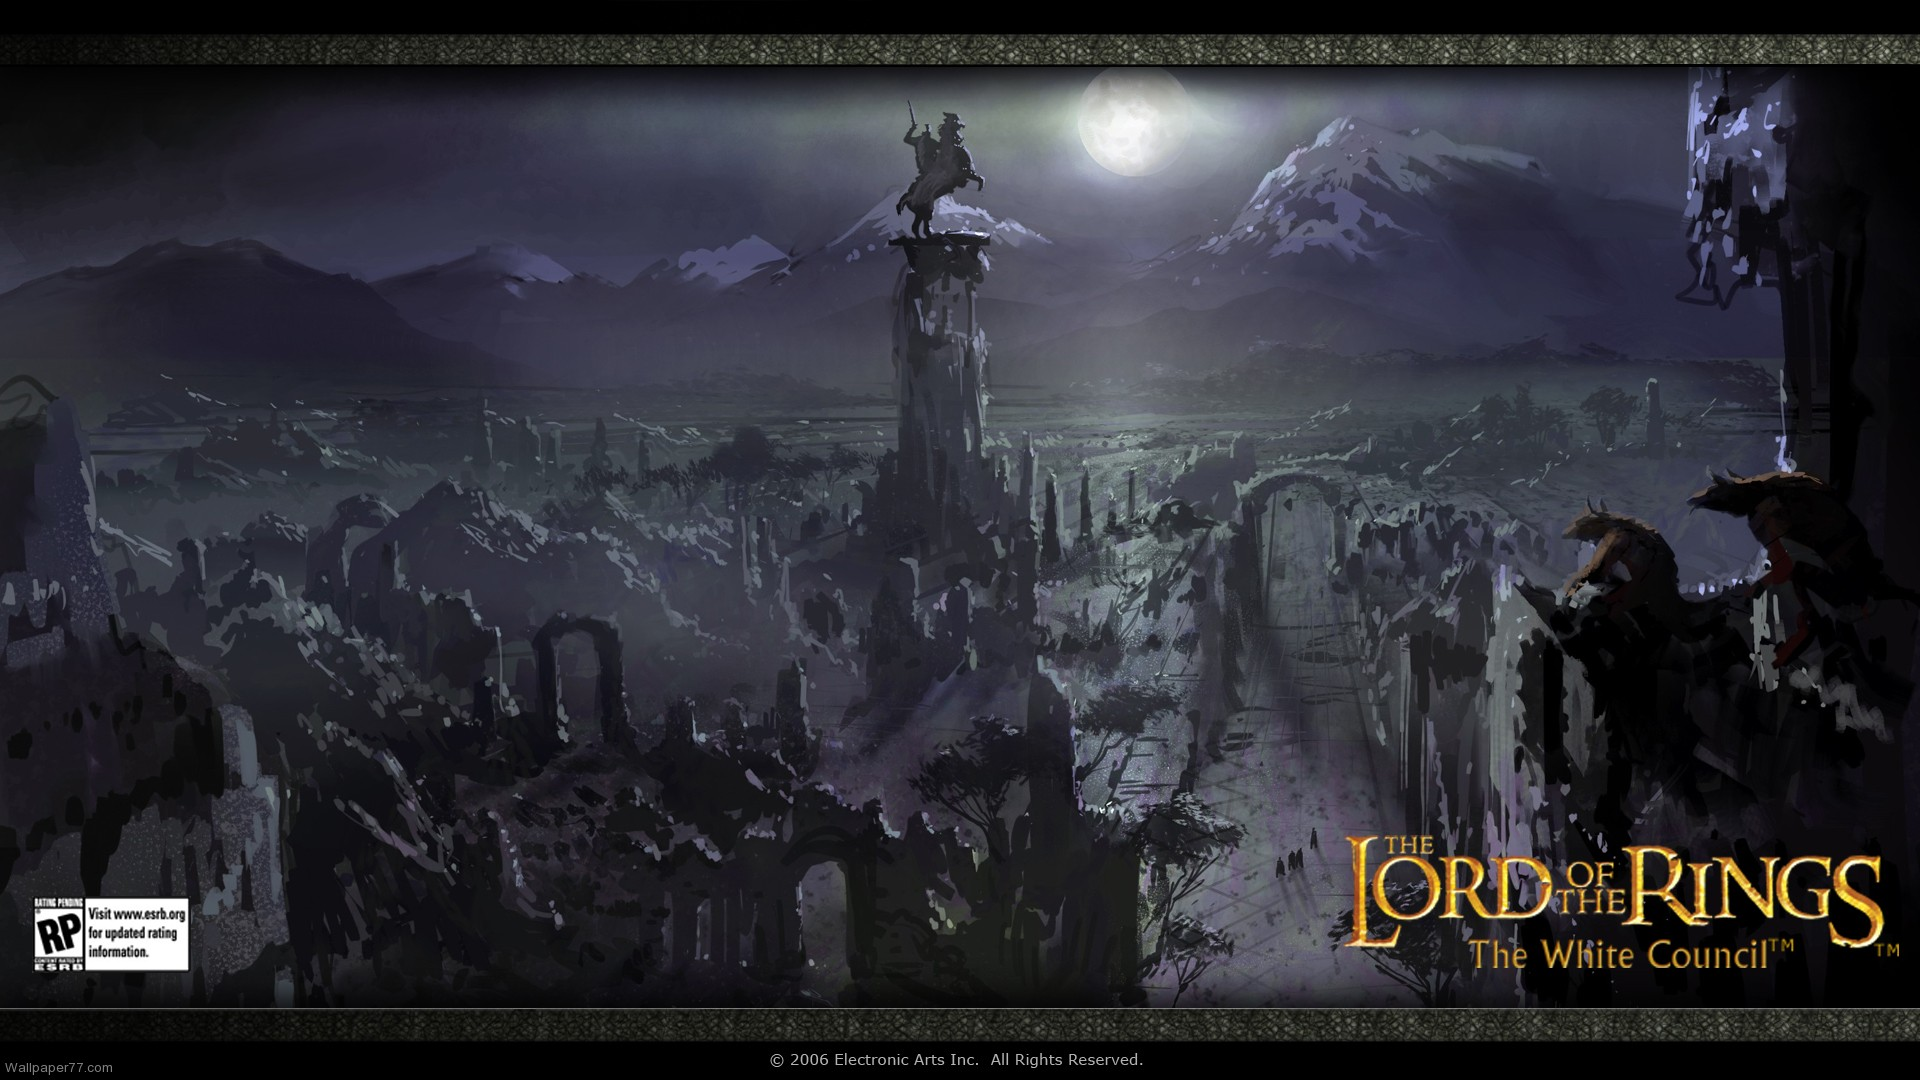 Lord of the Rings Wallpaper 4 lord of the rings wallpaperslord of the 1920x1080